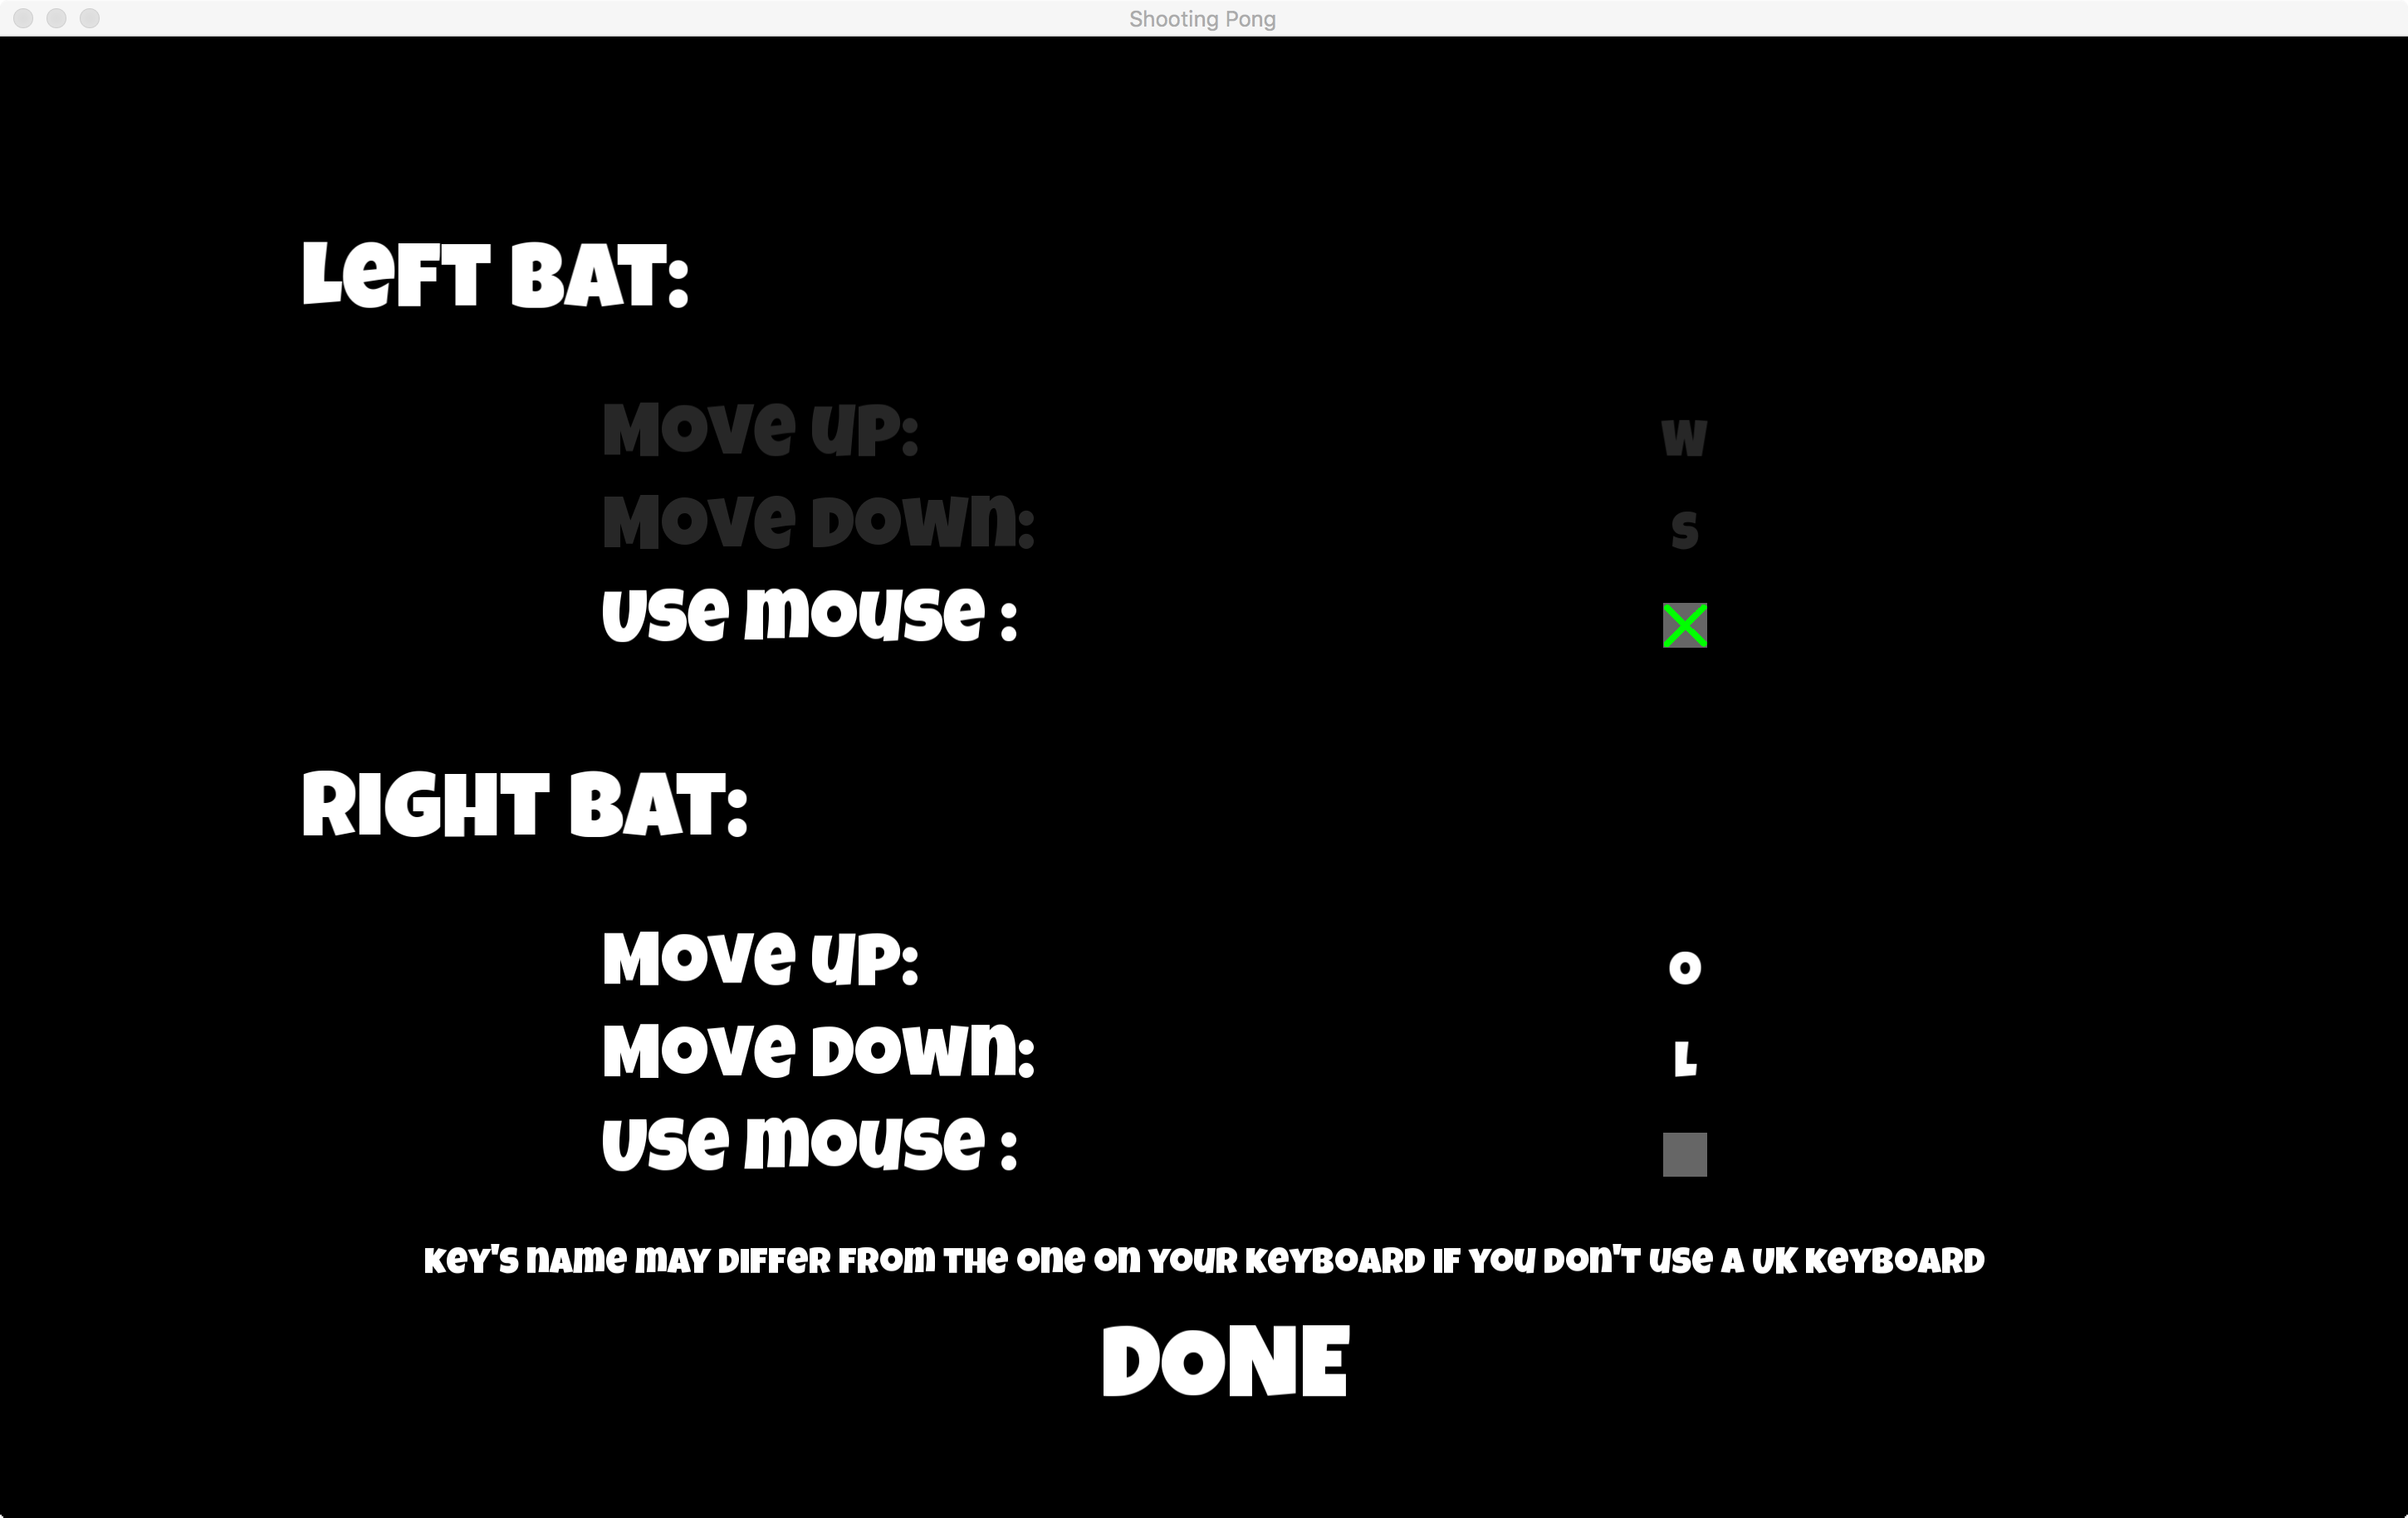 Shooting Pong Setting Screen